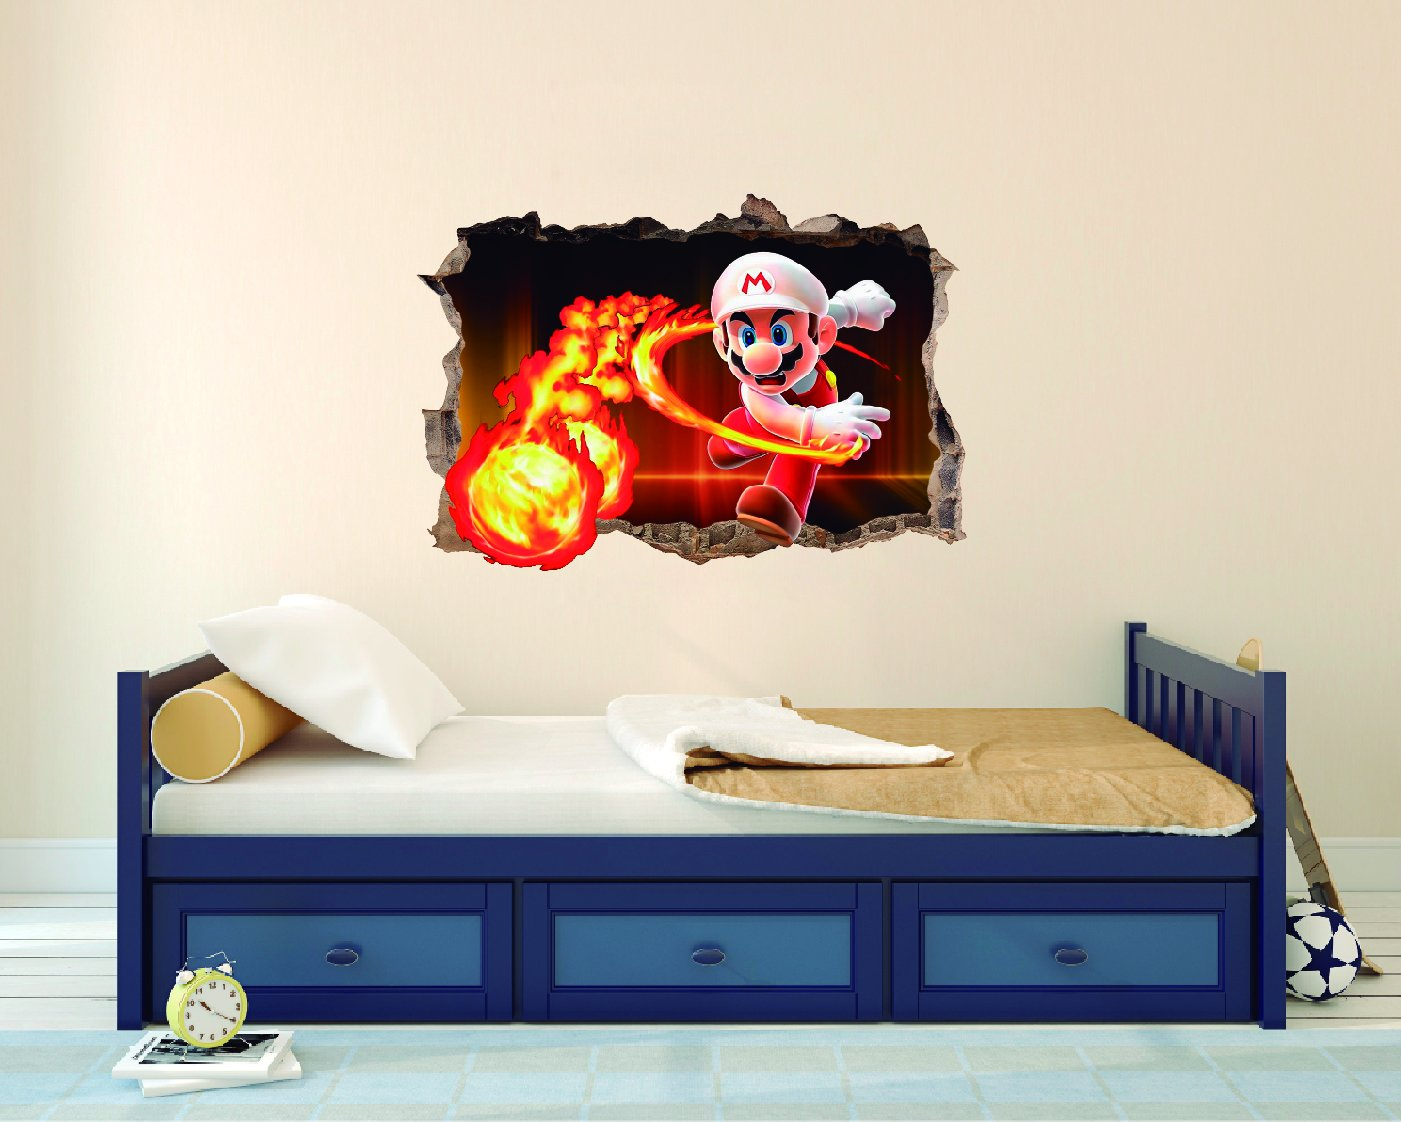 Mario and fireball wall decal - 3D Smashed Wall Effect - Wall Decal For Home Decoration (Wide 20''x14'' Height Inches)